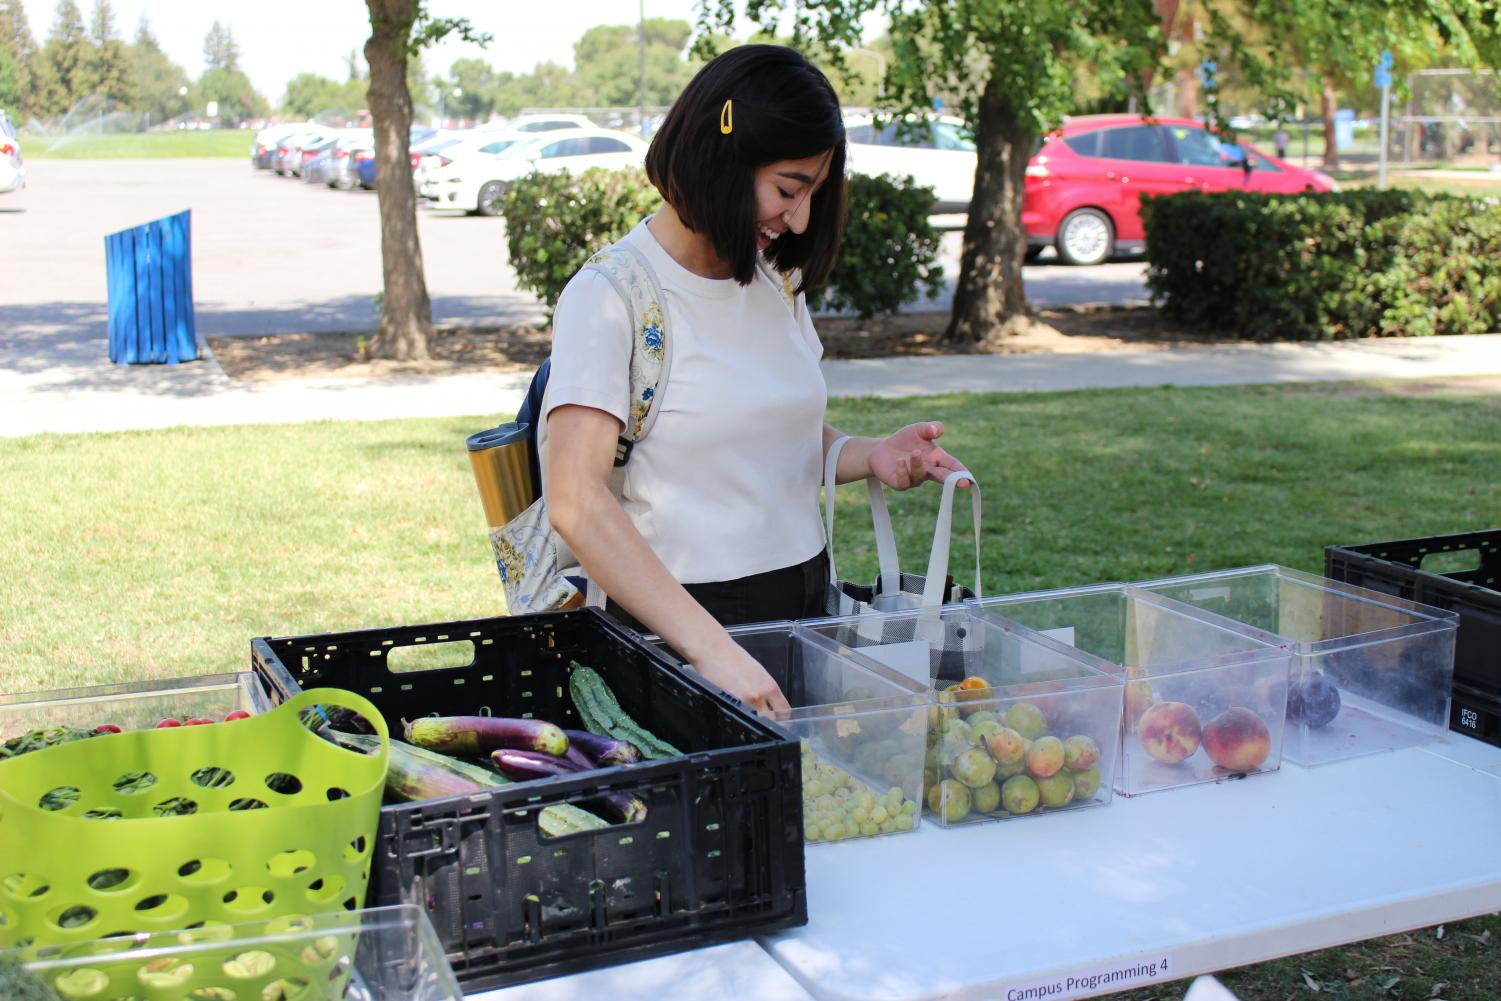 Stephani Williams/The Runner. On Tuesday, September 3, 2019, Brandy Plaat, a Biology major, stocks up on fruit at the pop-up Food Pantry. Located near the Student Union and the Café.